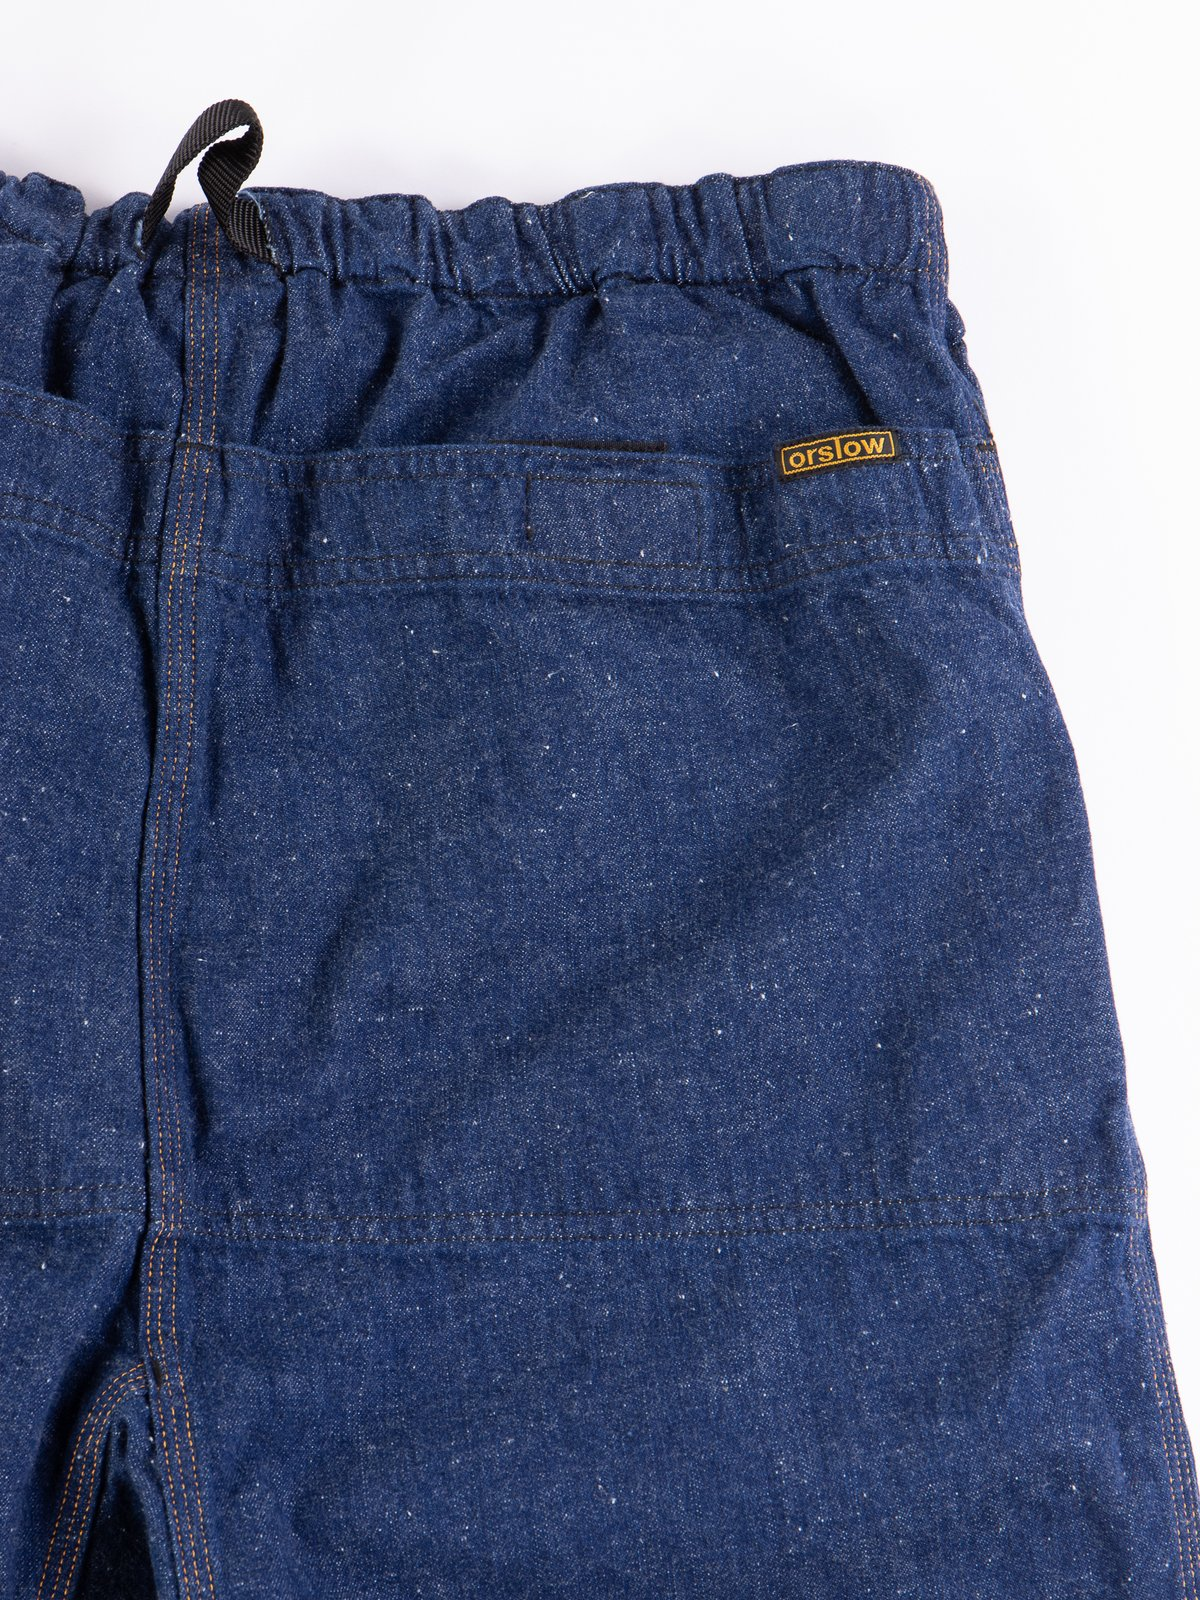 One Wash Denim TBB Climbing Pant - Image 6